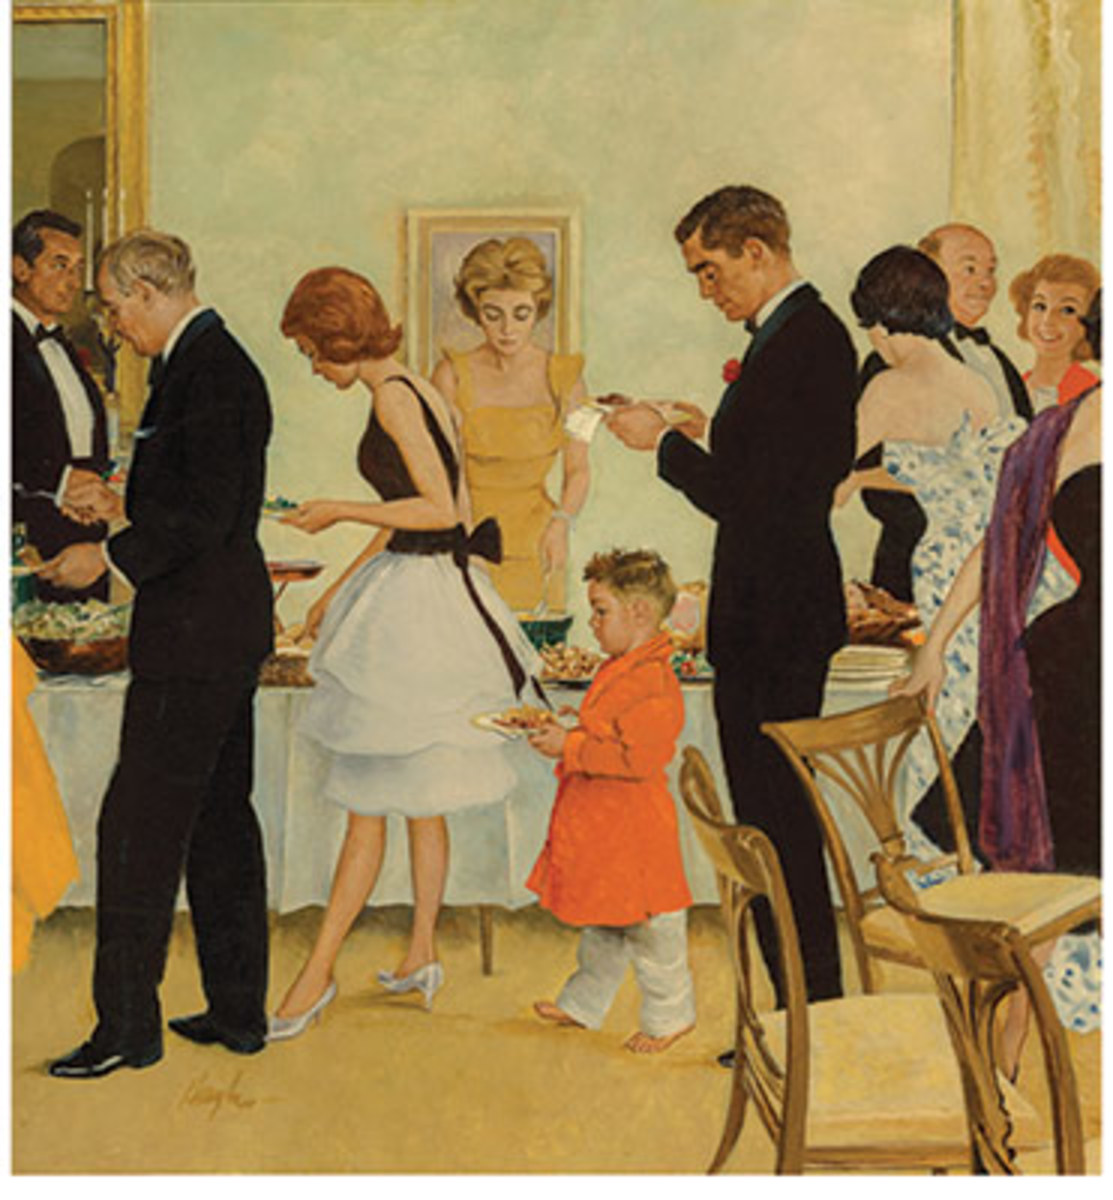 George Hughes Dinner Party, The Saturday Evening Post cover, November 11, 1961, sold for $87,500 and was a new auction record for the artist.